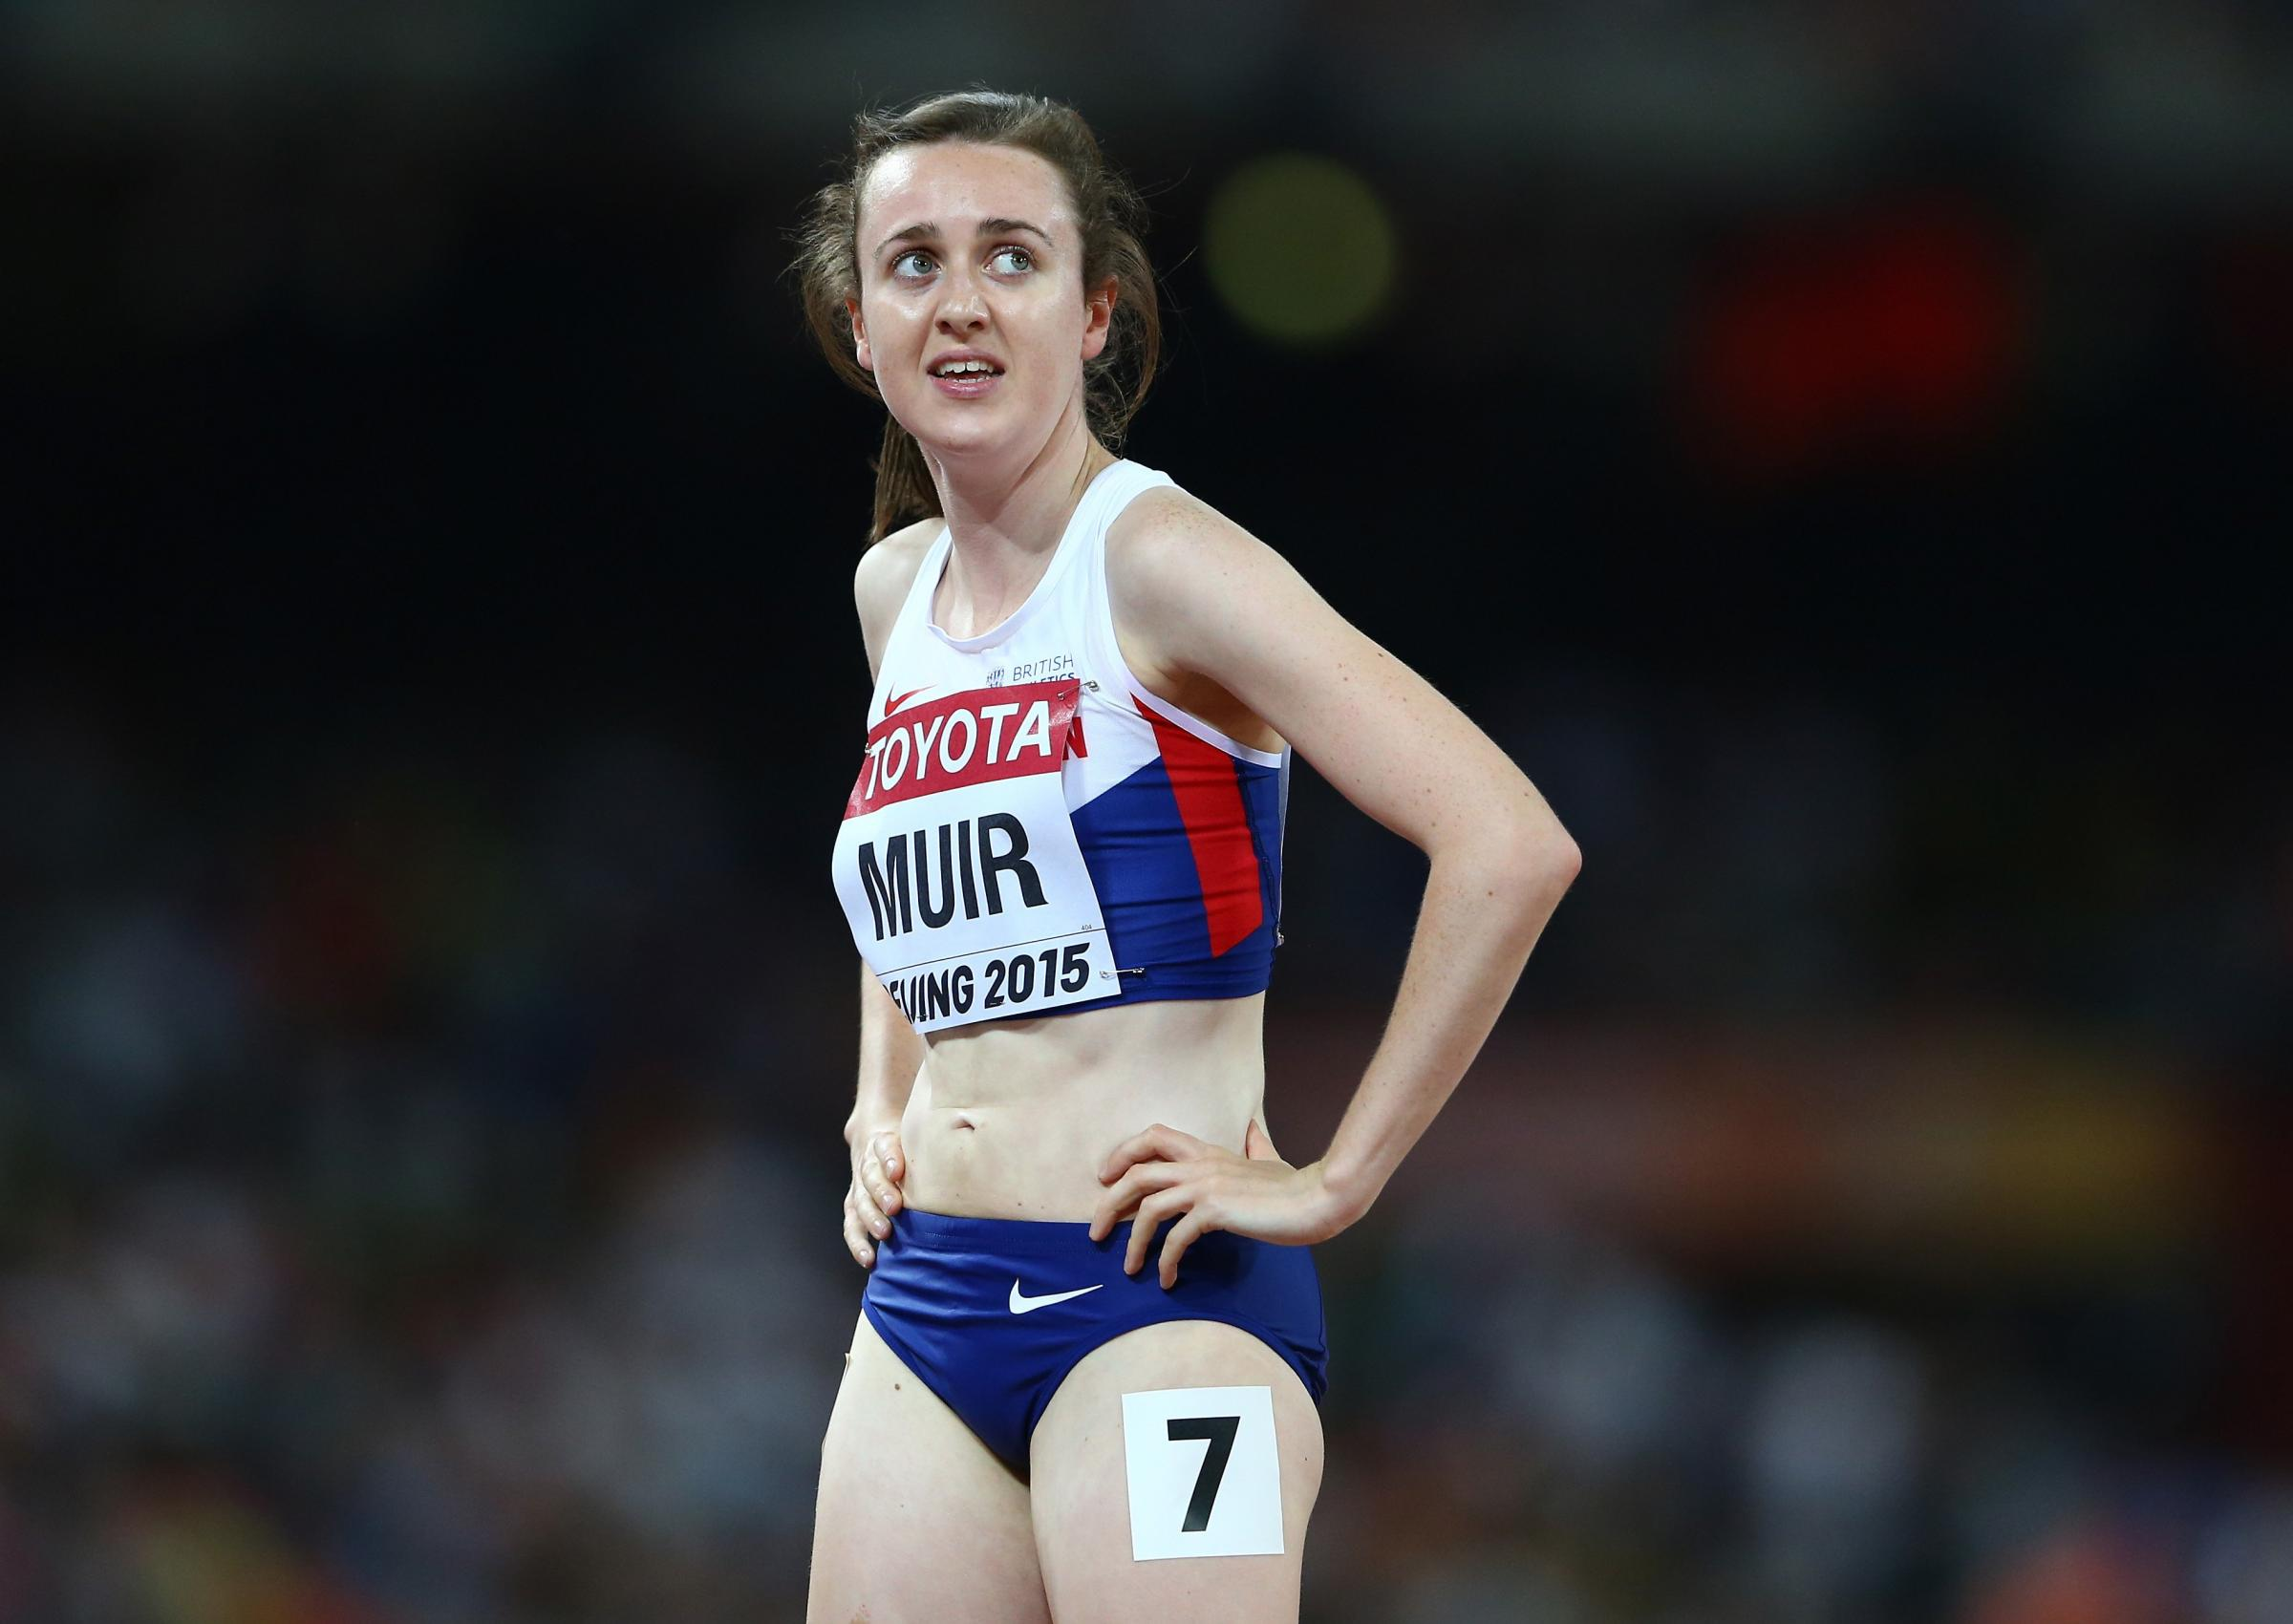 Laura Muir has renewed confidence after an impressive showing at the World Championships in Beijing